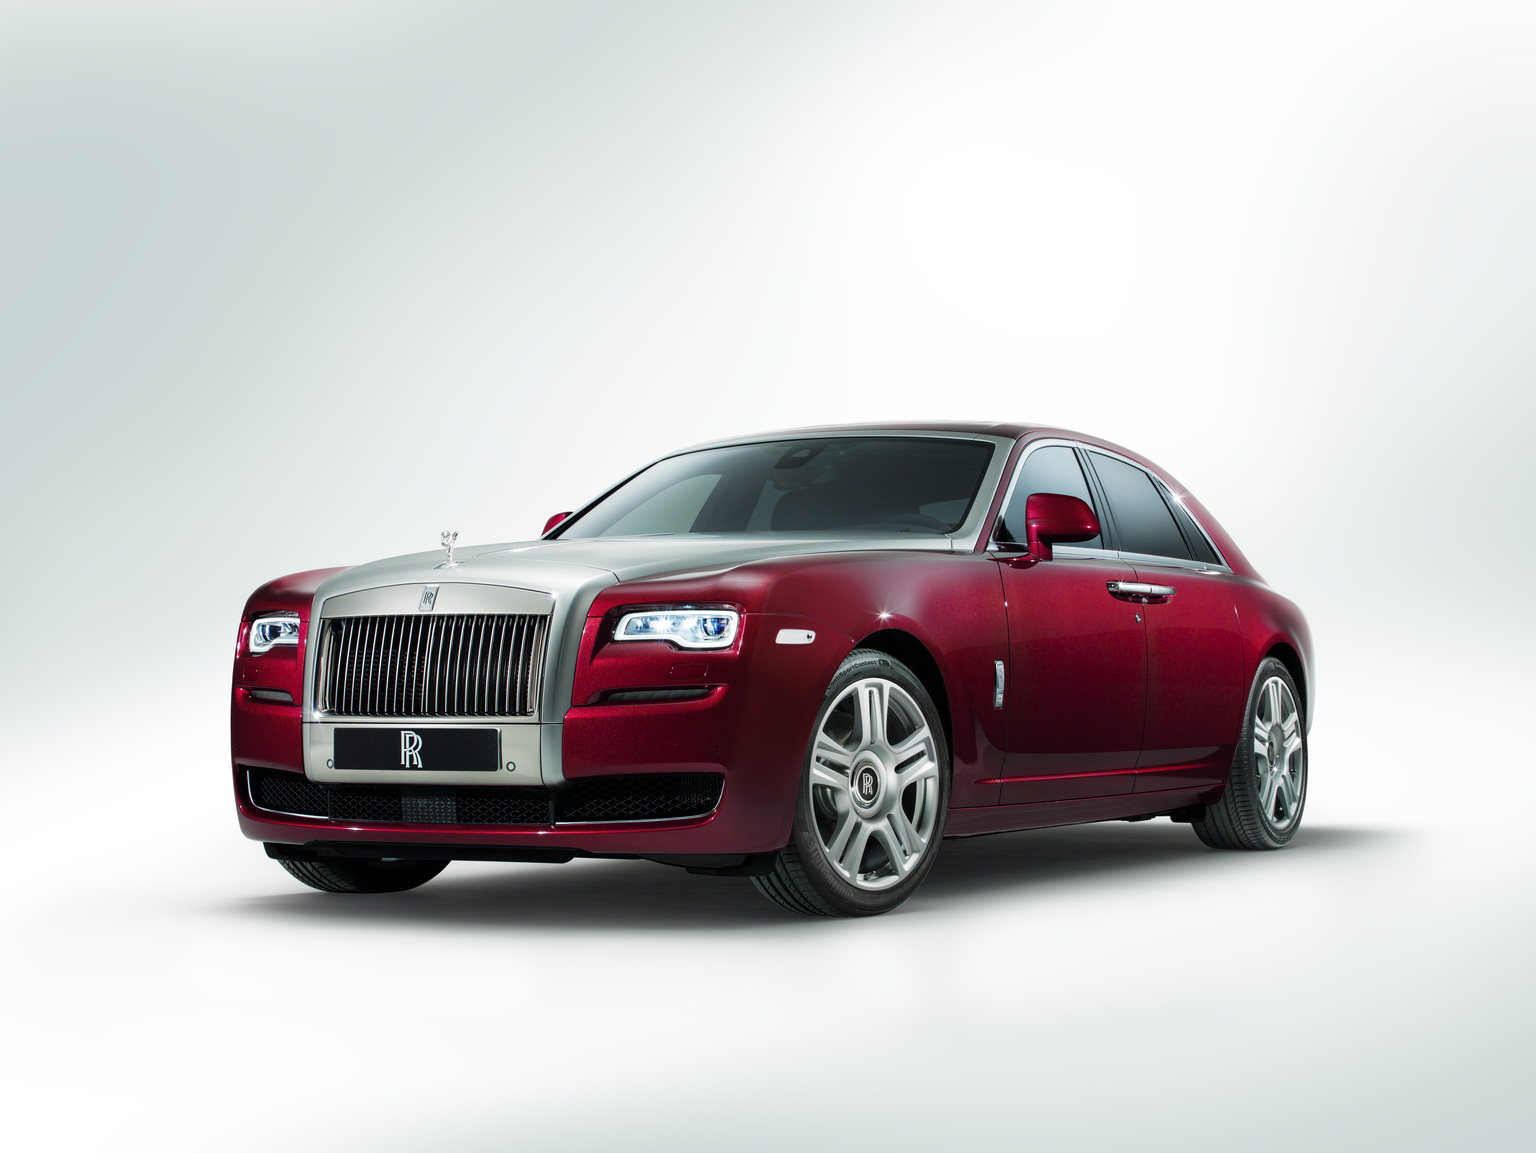 2014 Rolls-Royce Ghost Series II